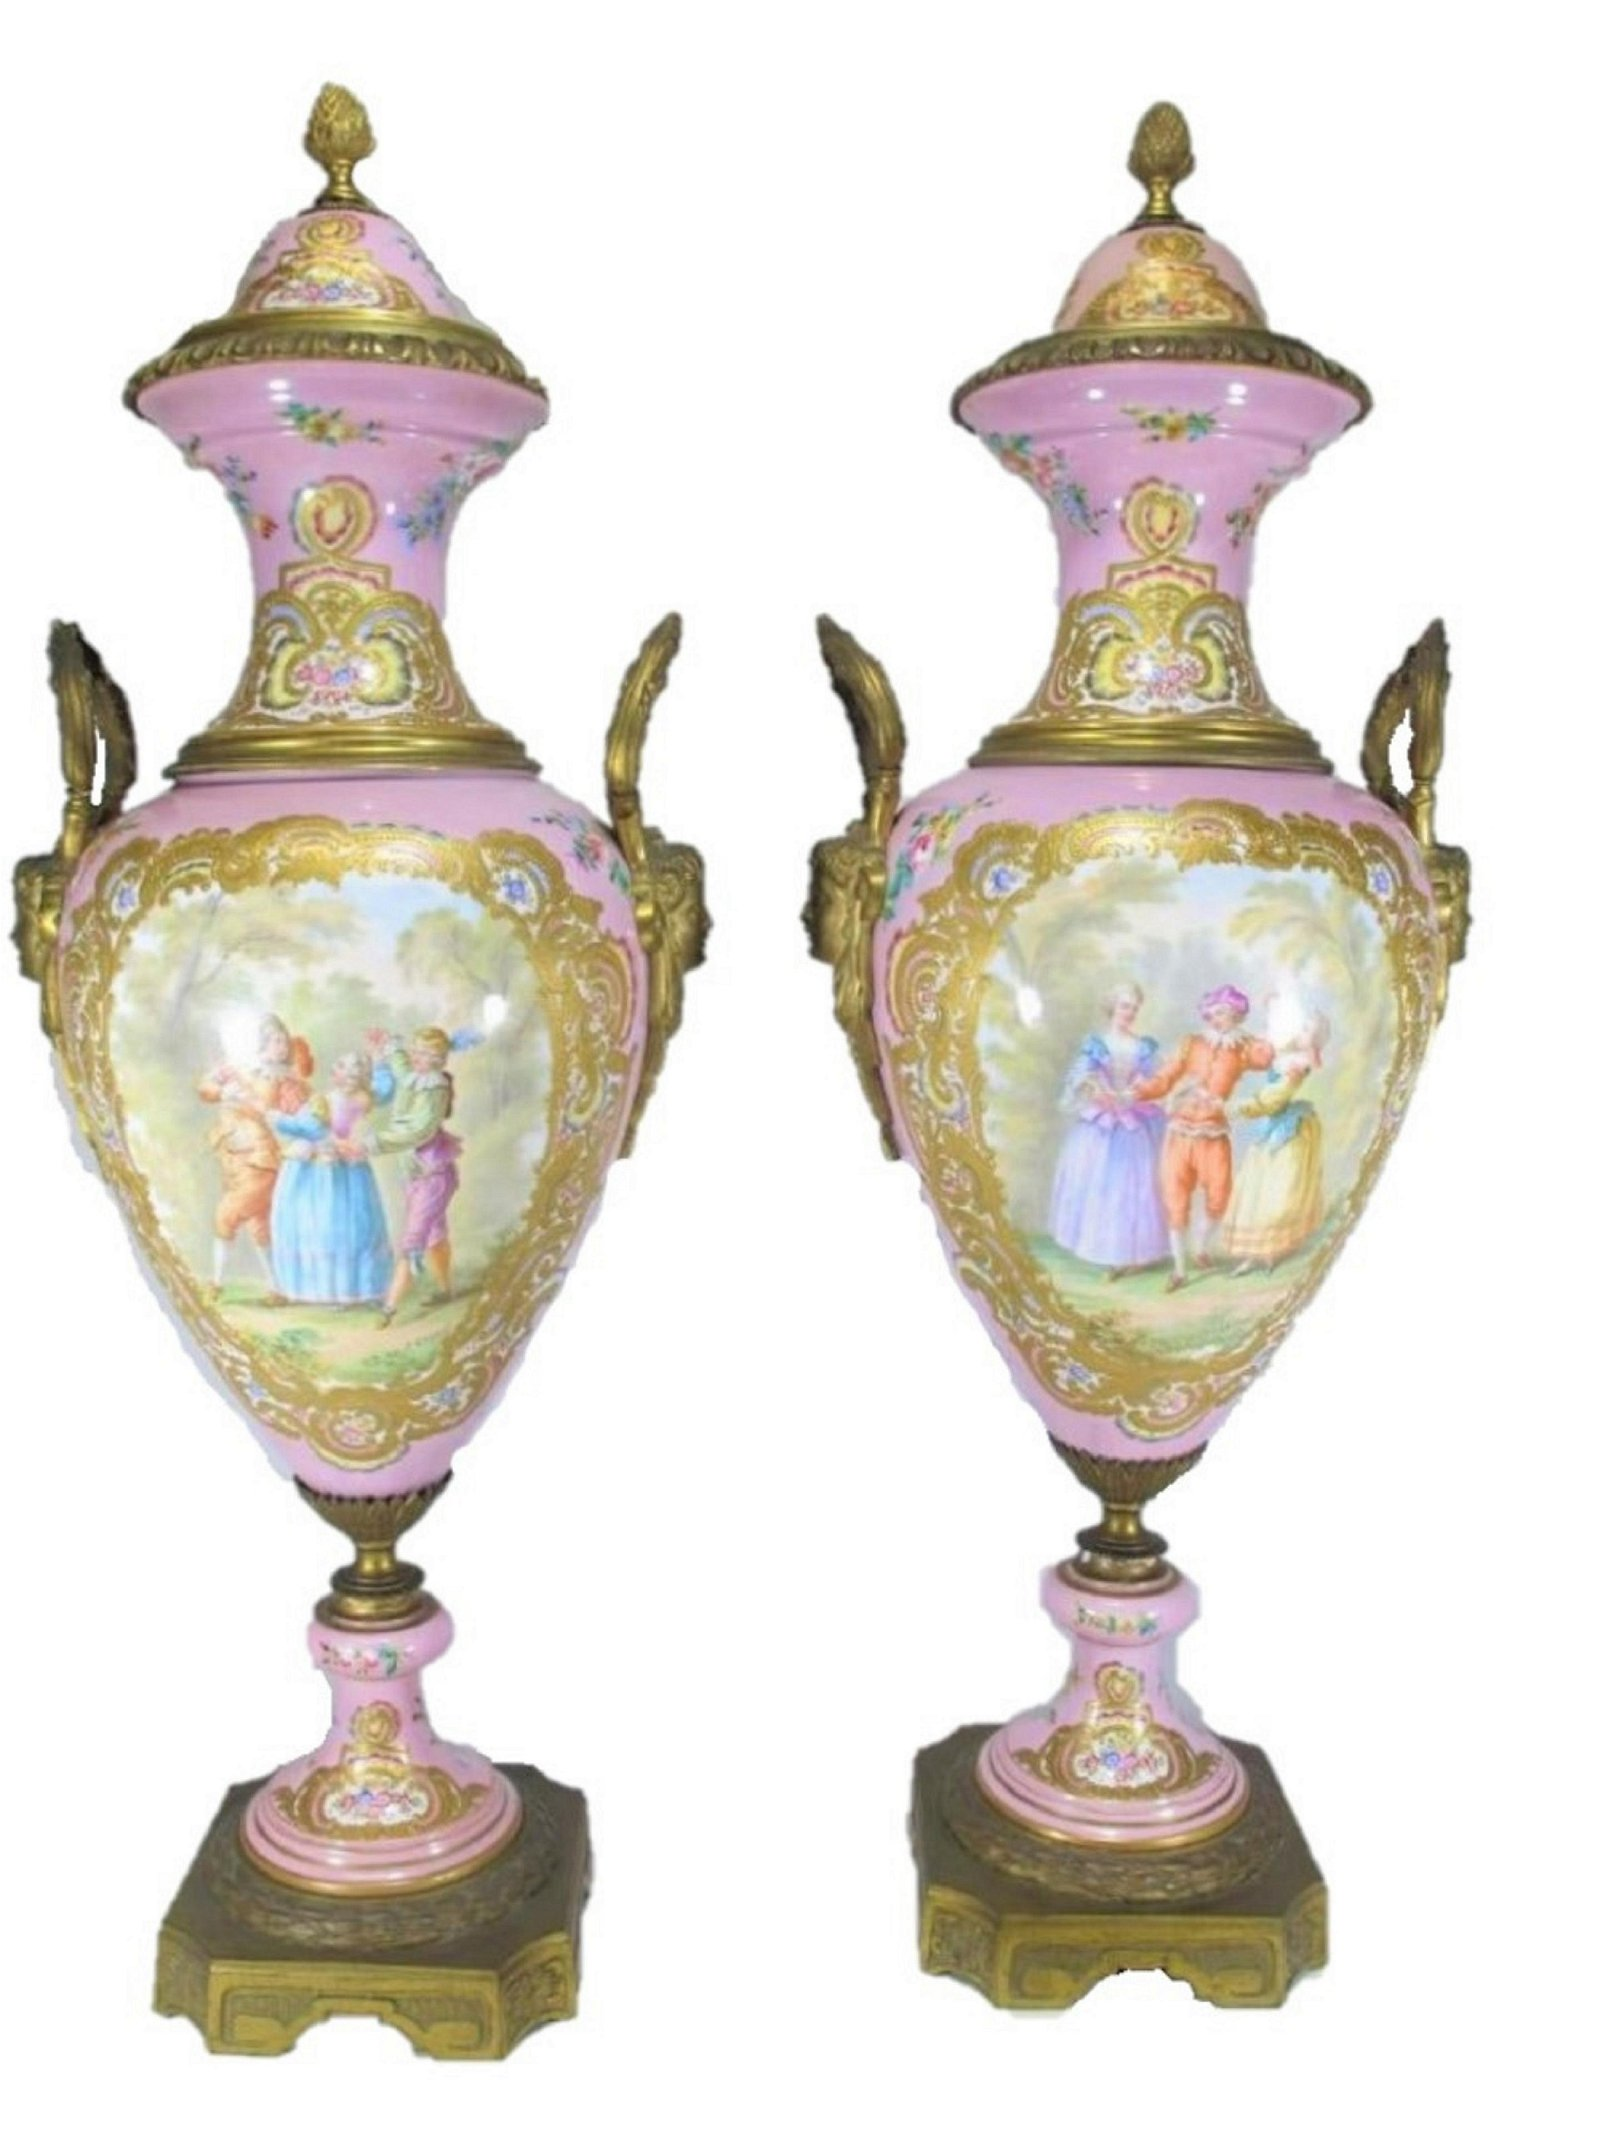 19th C French Sevres pair of porcelain & bronze urns